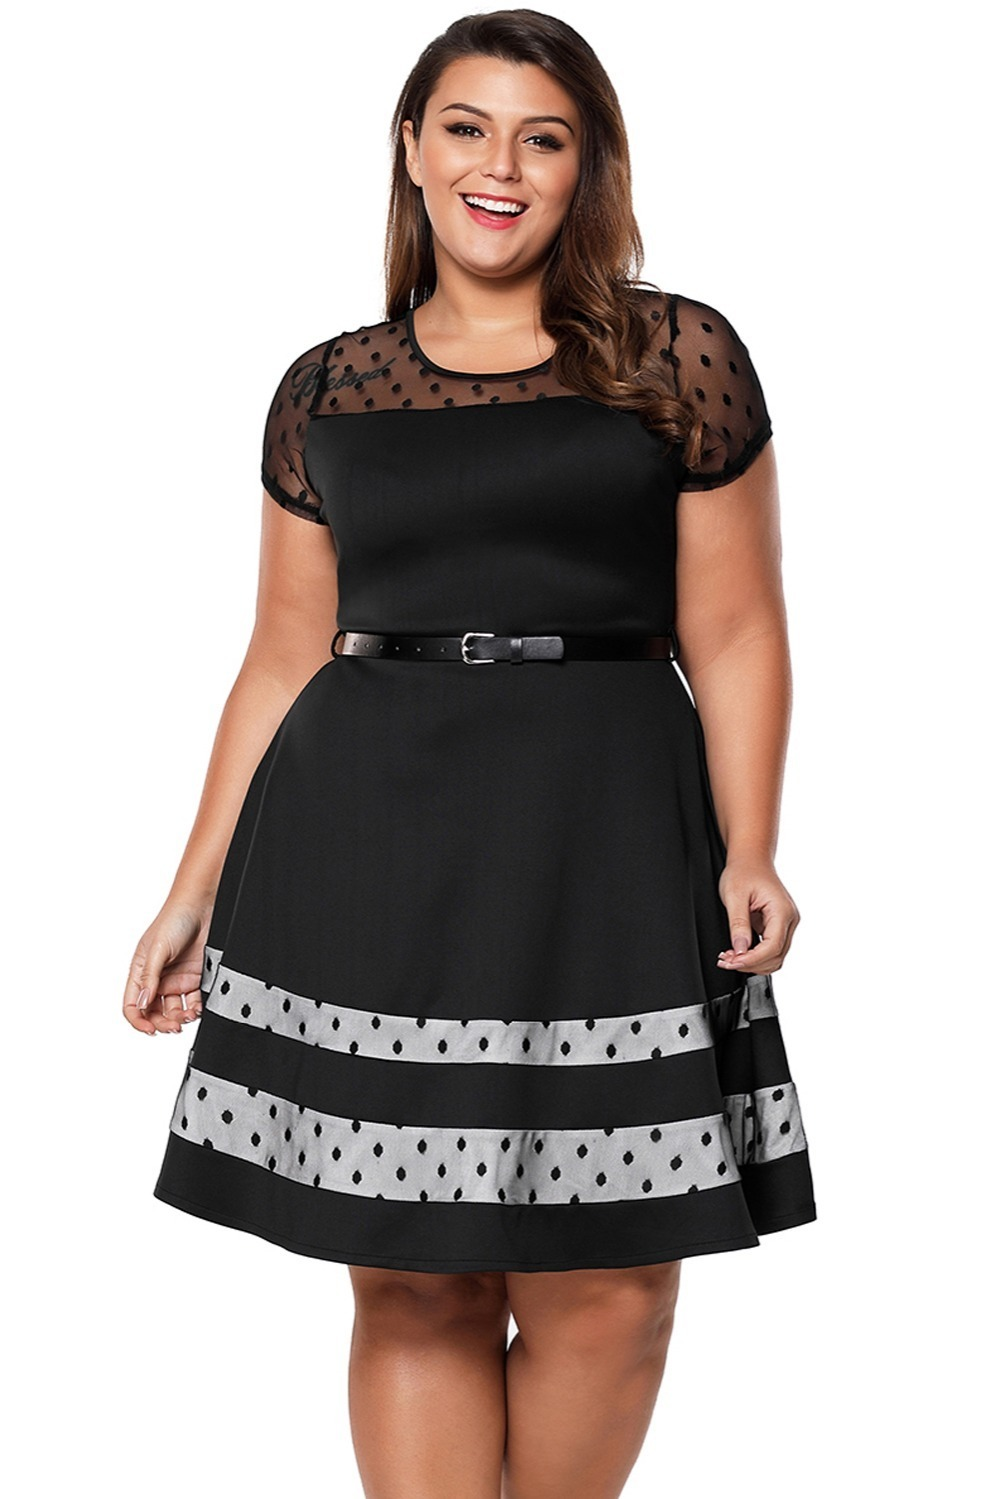 Black-Dotted-Mesh-Insert-Flare-Plus-Size-Dress-with-Belt-LC61970-2-5